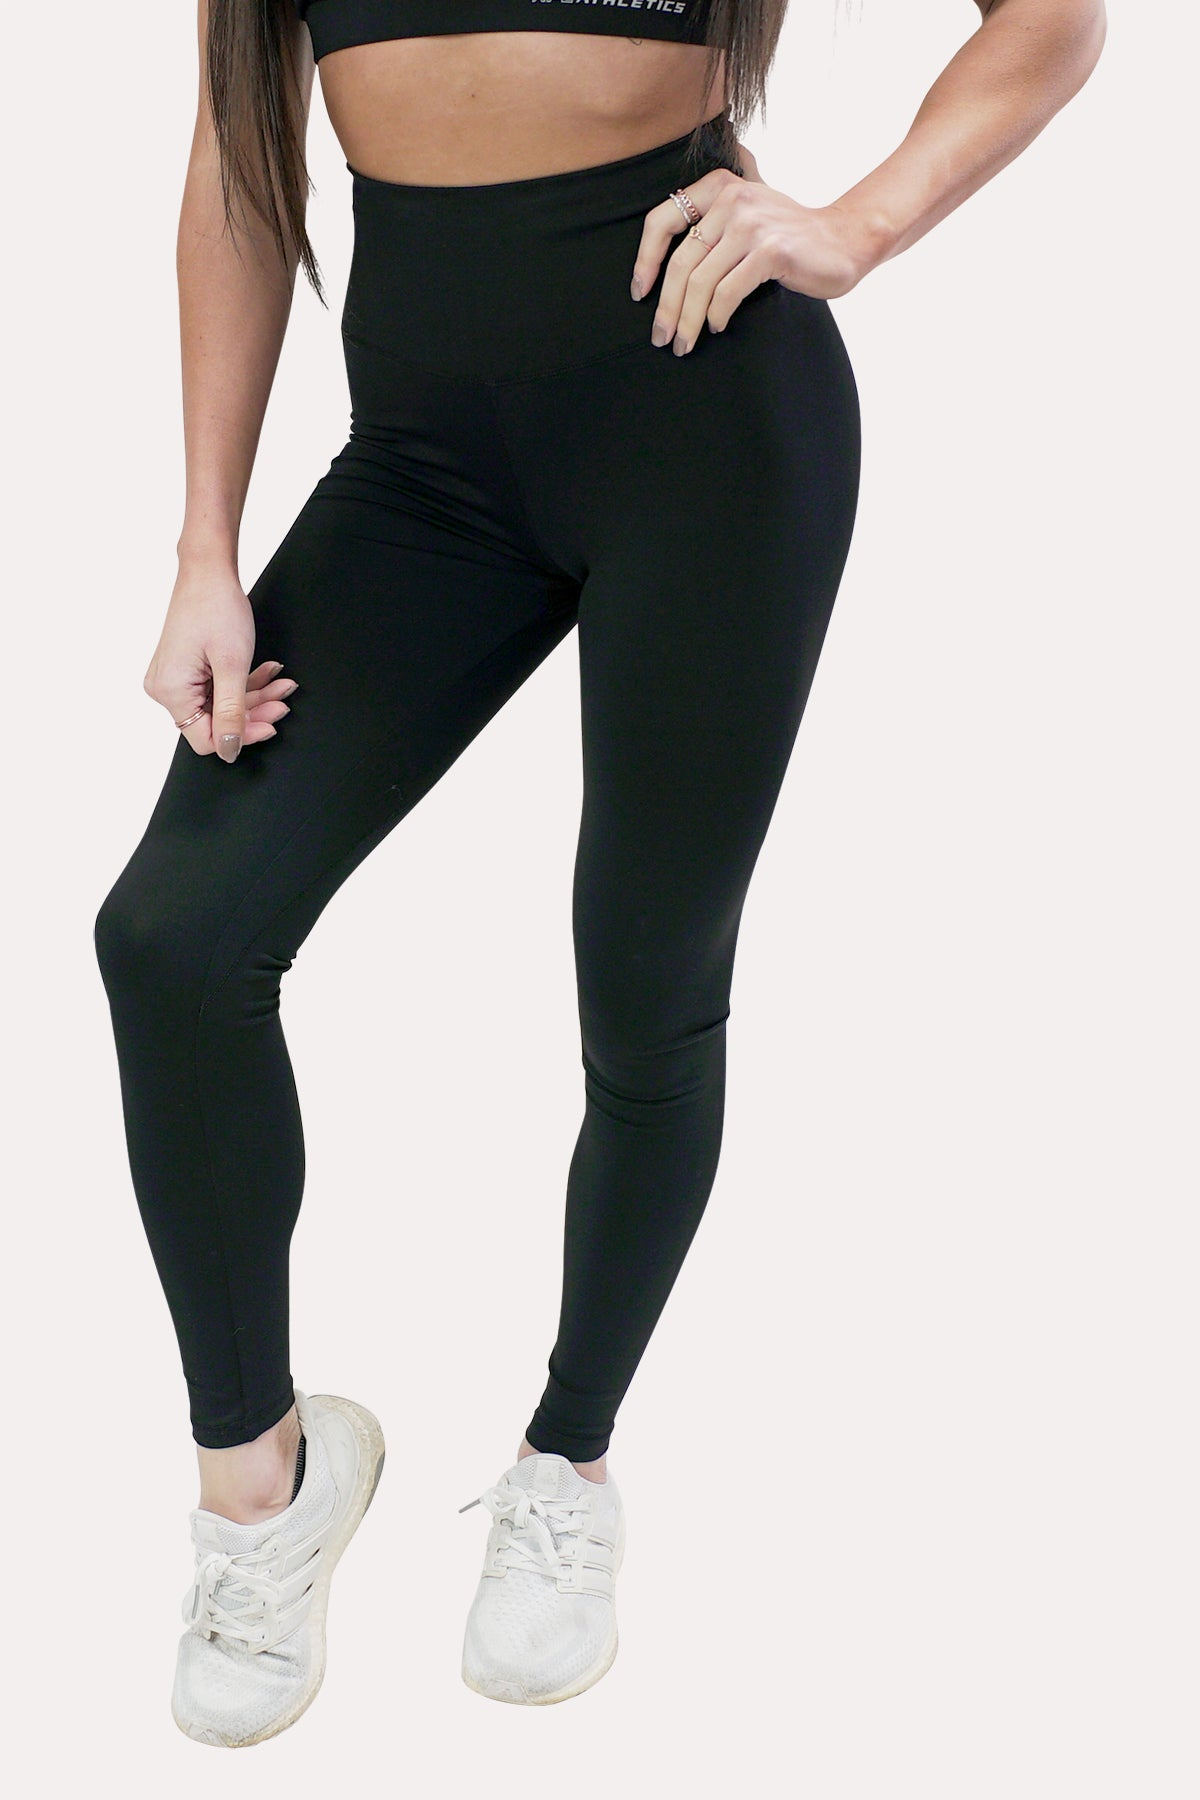 Ease Leggings - Black